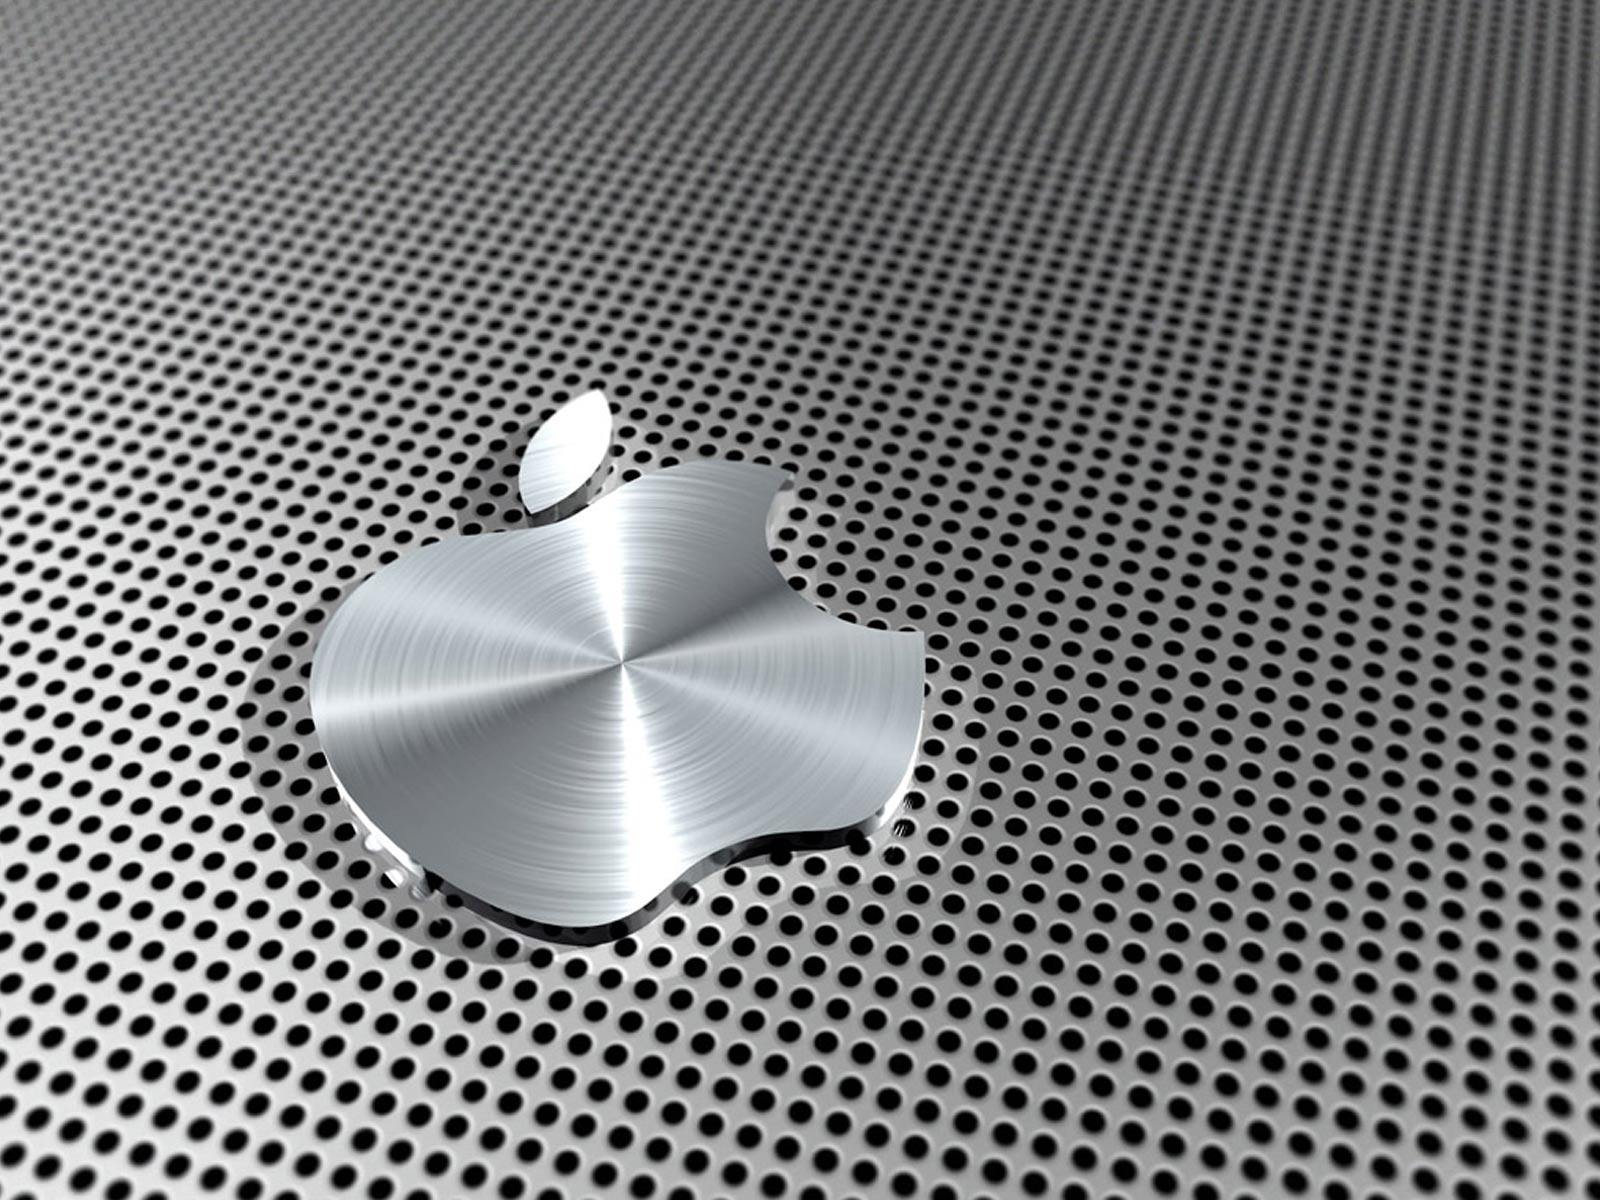 You can make 3d apple logo wallpaper For your Desktop Background, Tablet, and Smartphone device for free. Size this wallpaper is 1600x1200.